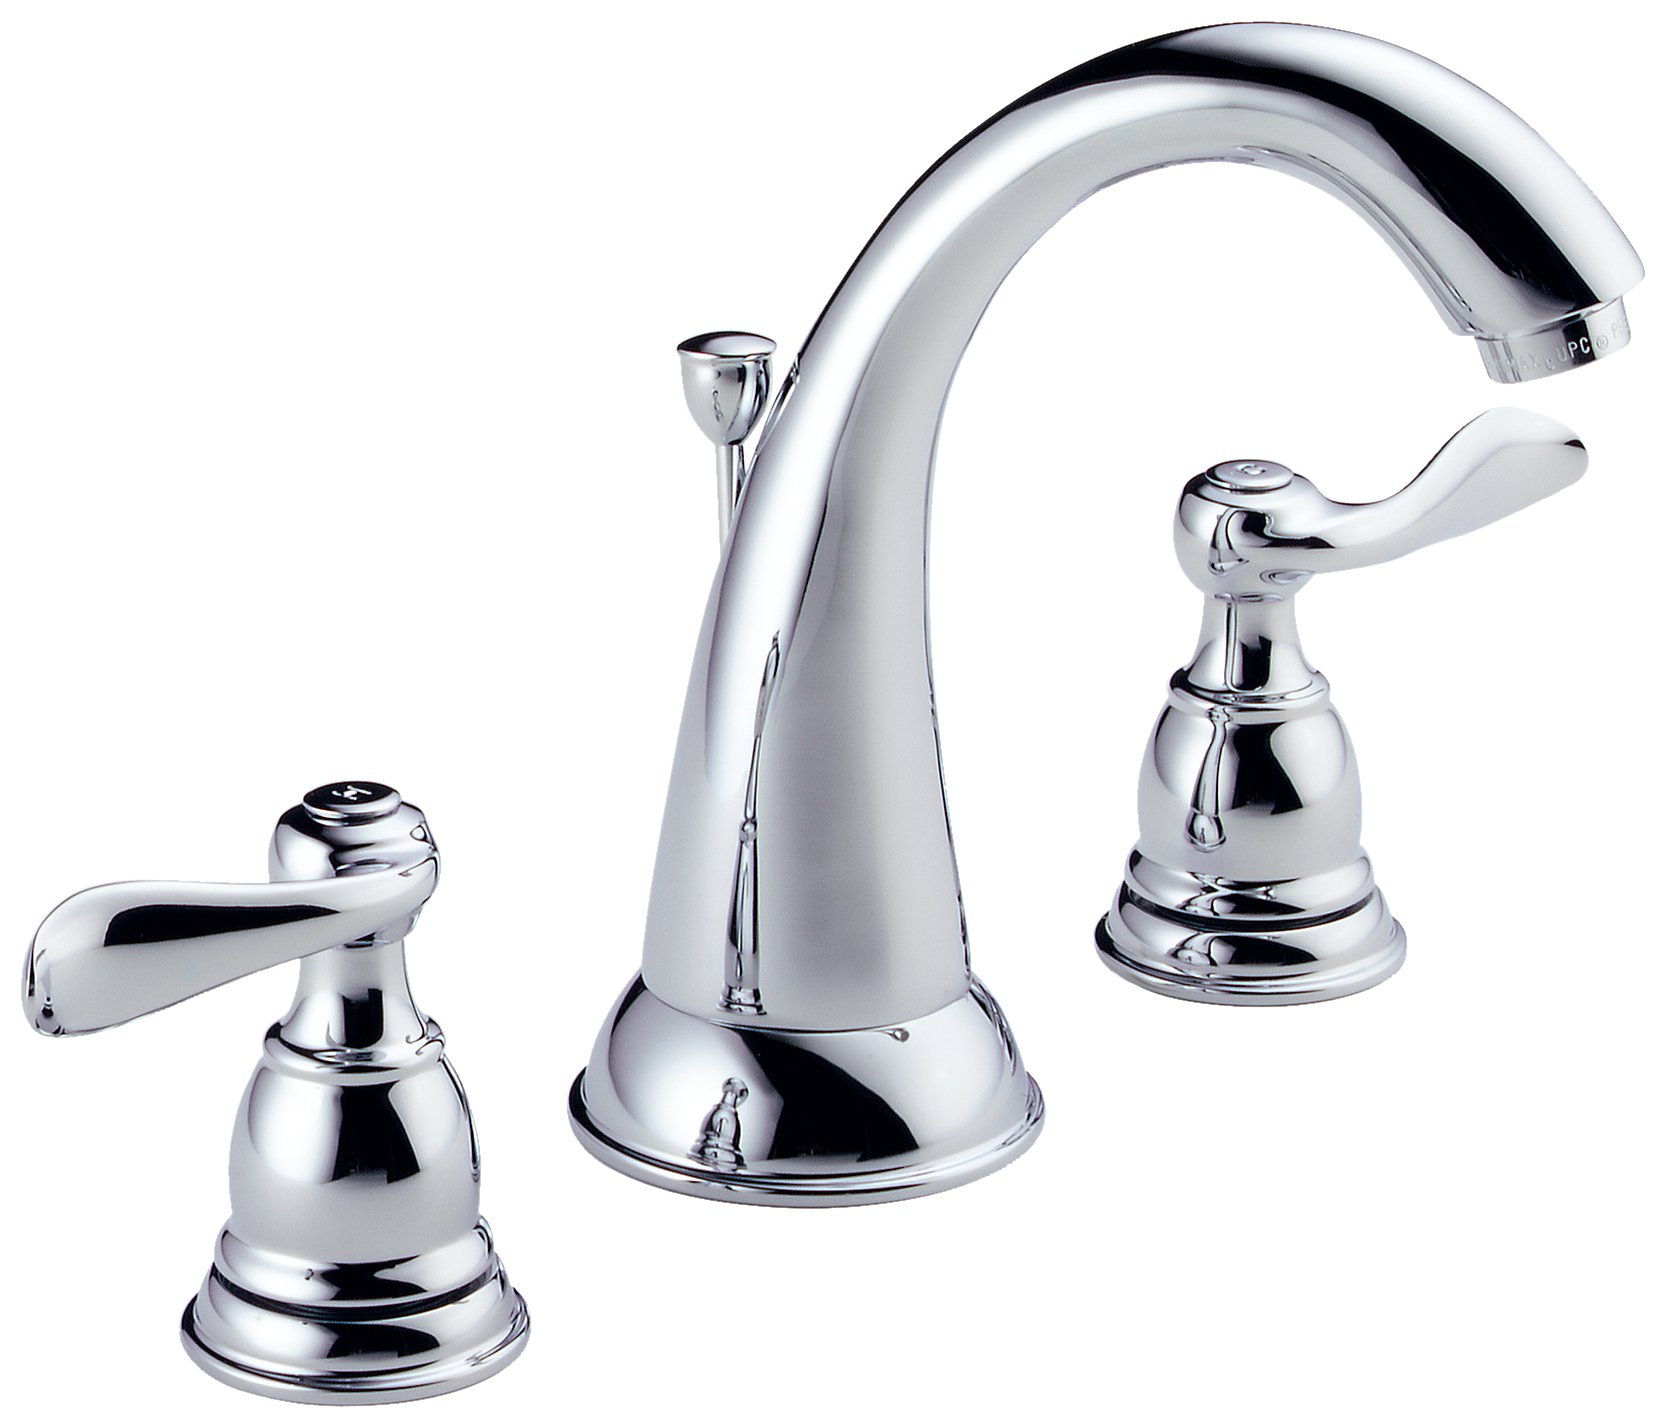 Delta Windemere 2-Handle Widespread Bathroom Faucet with Metal Drain Assembly, Chrome B3596LF